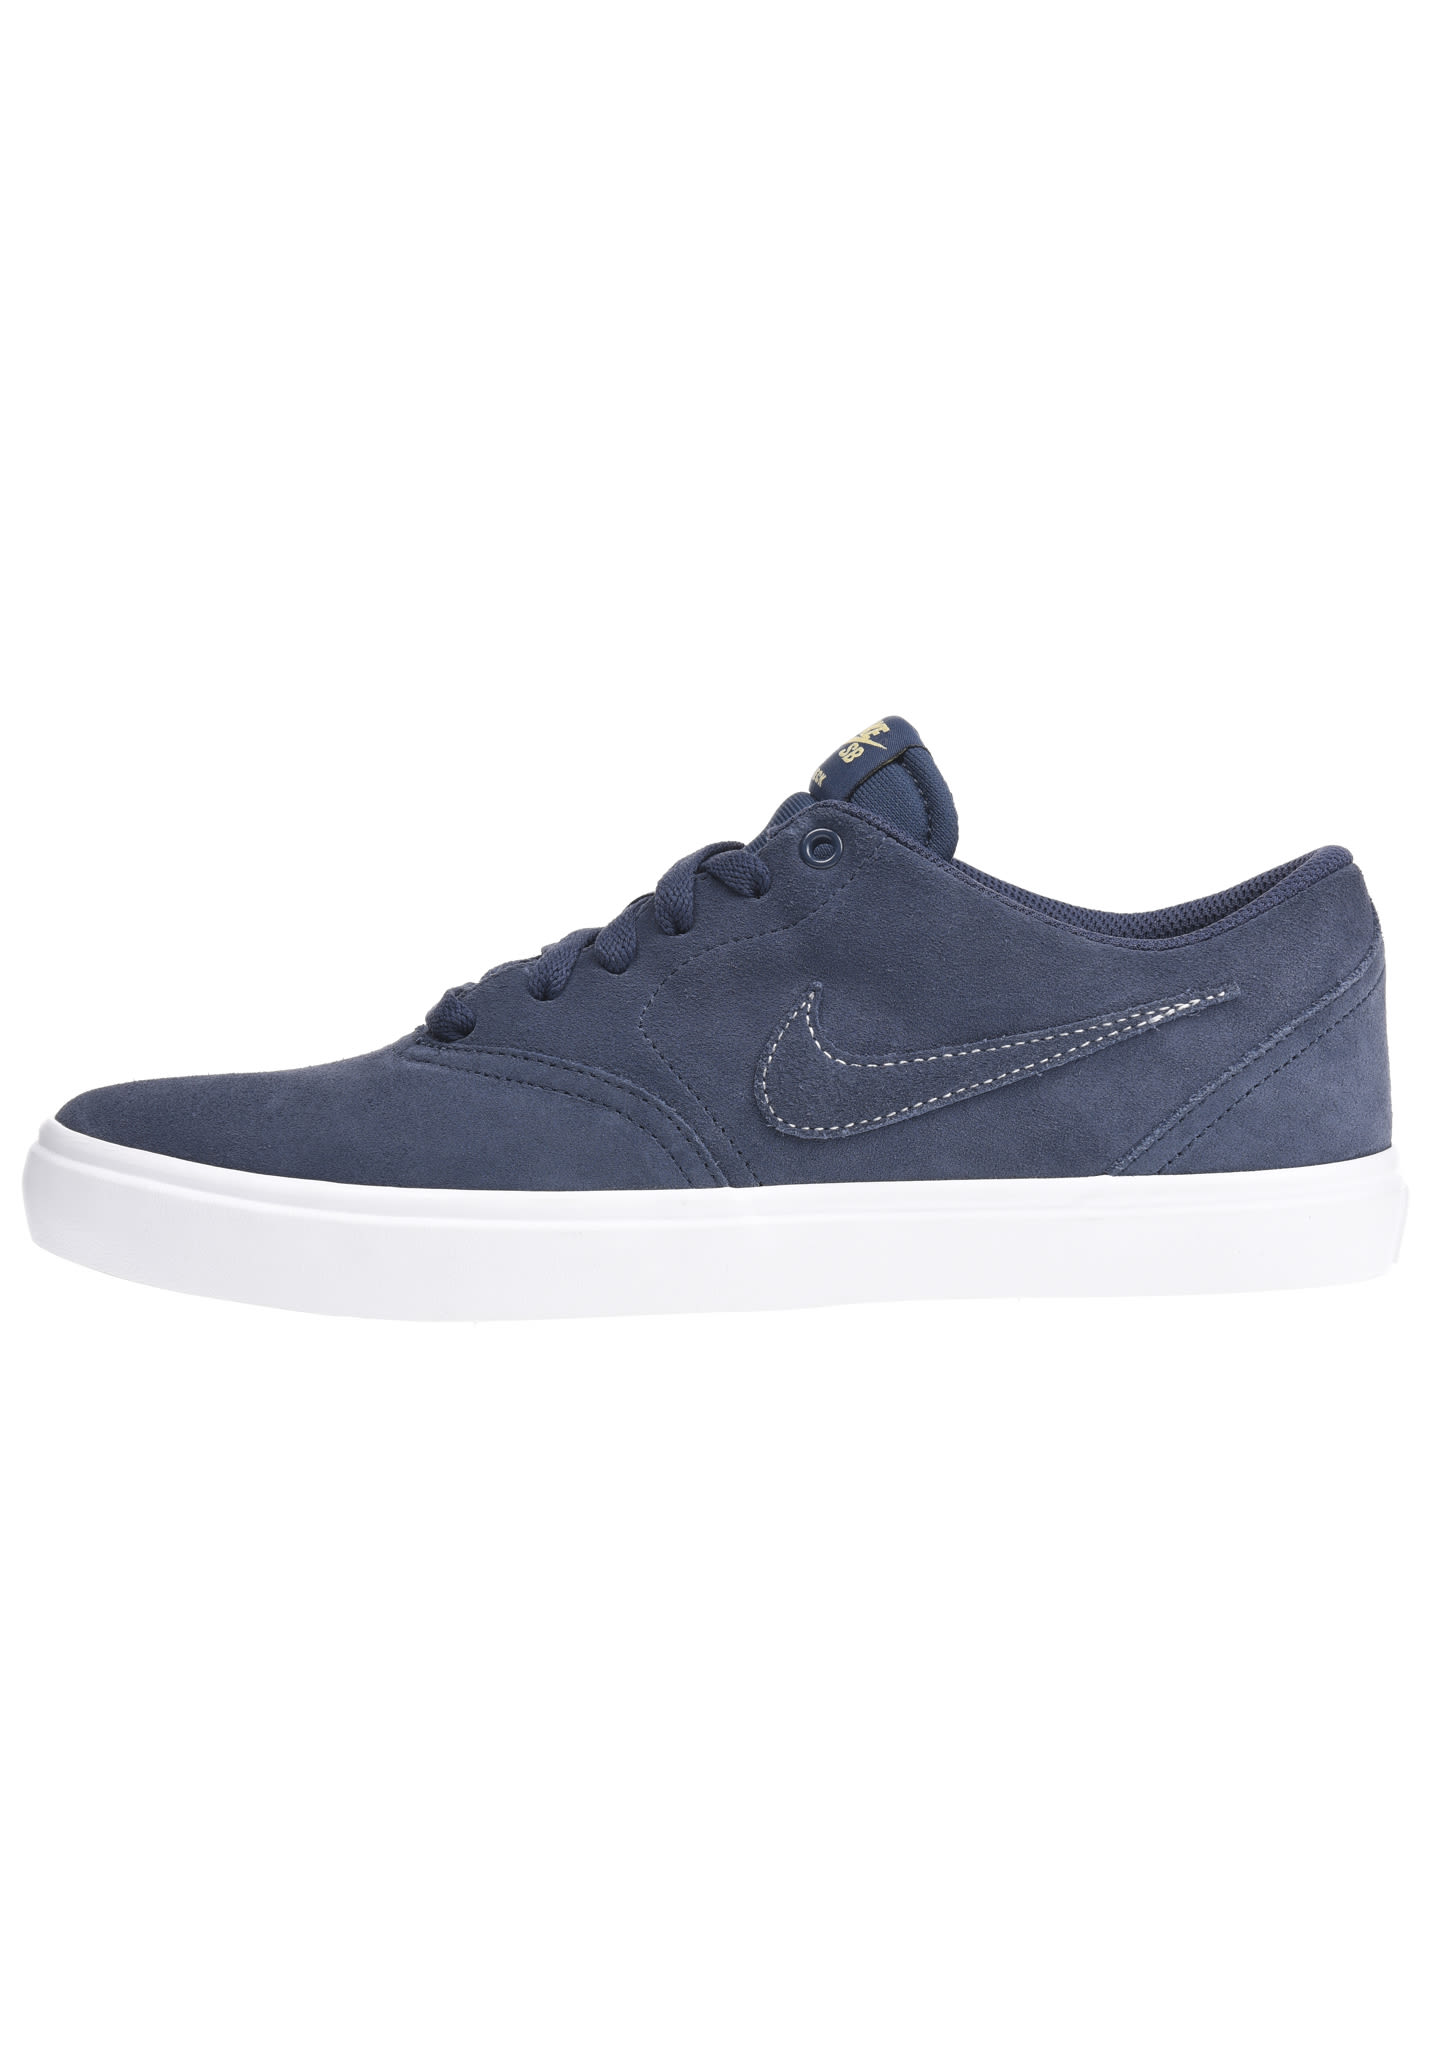 4359258d6c80 NIKE SB Check Solar - Sneakers for Men - Blue - Planet Sports